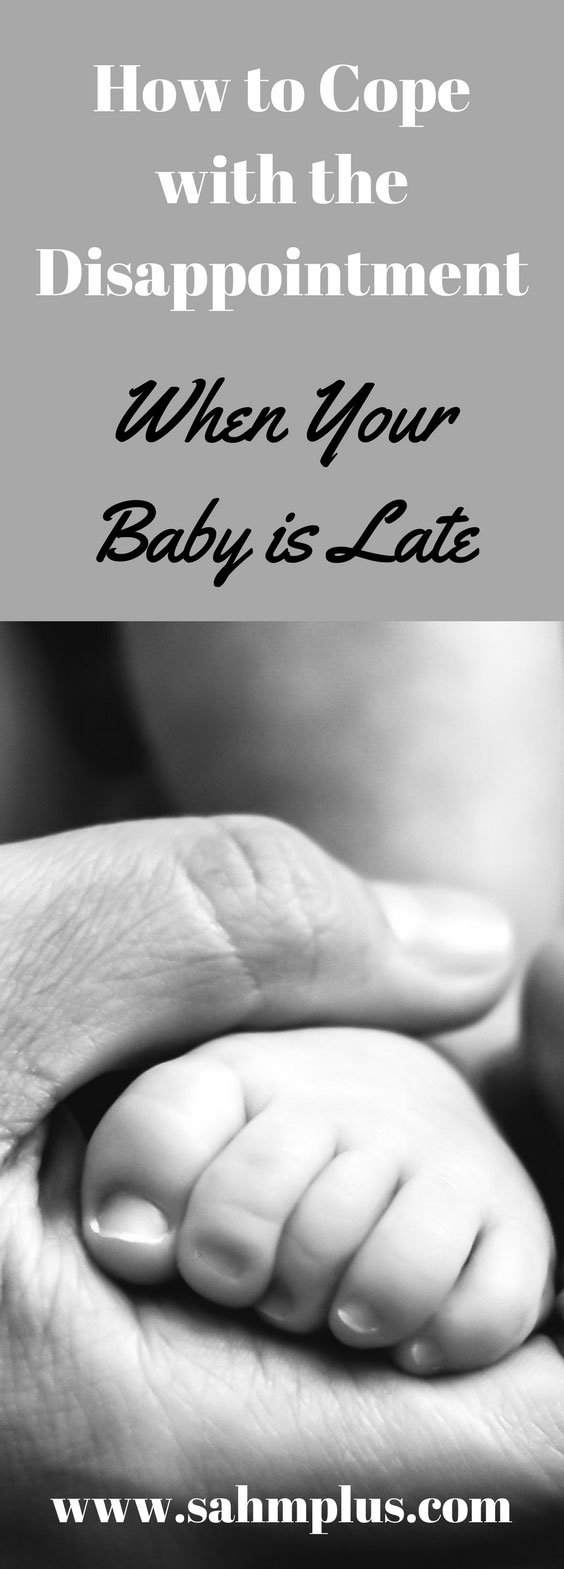 How to cope with the disappointment when your baby is late. Remember, a due date is an estimate. Baby will come when it's ready. And, handle the constant questions whatever way you need. Don't rush nature! via www.sahmplus.com